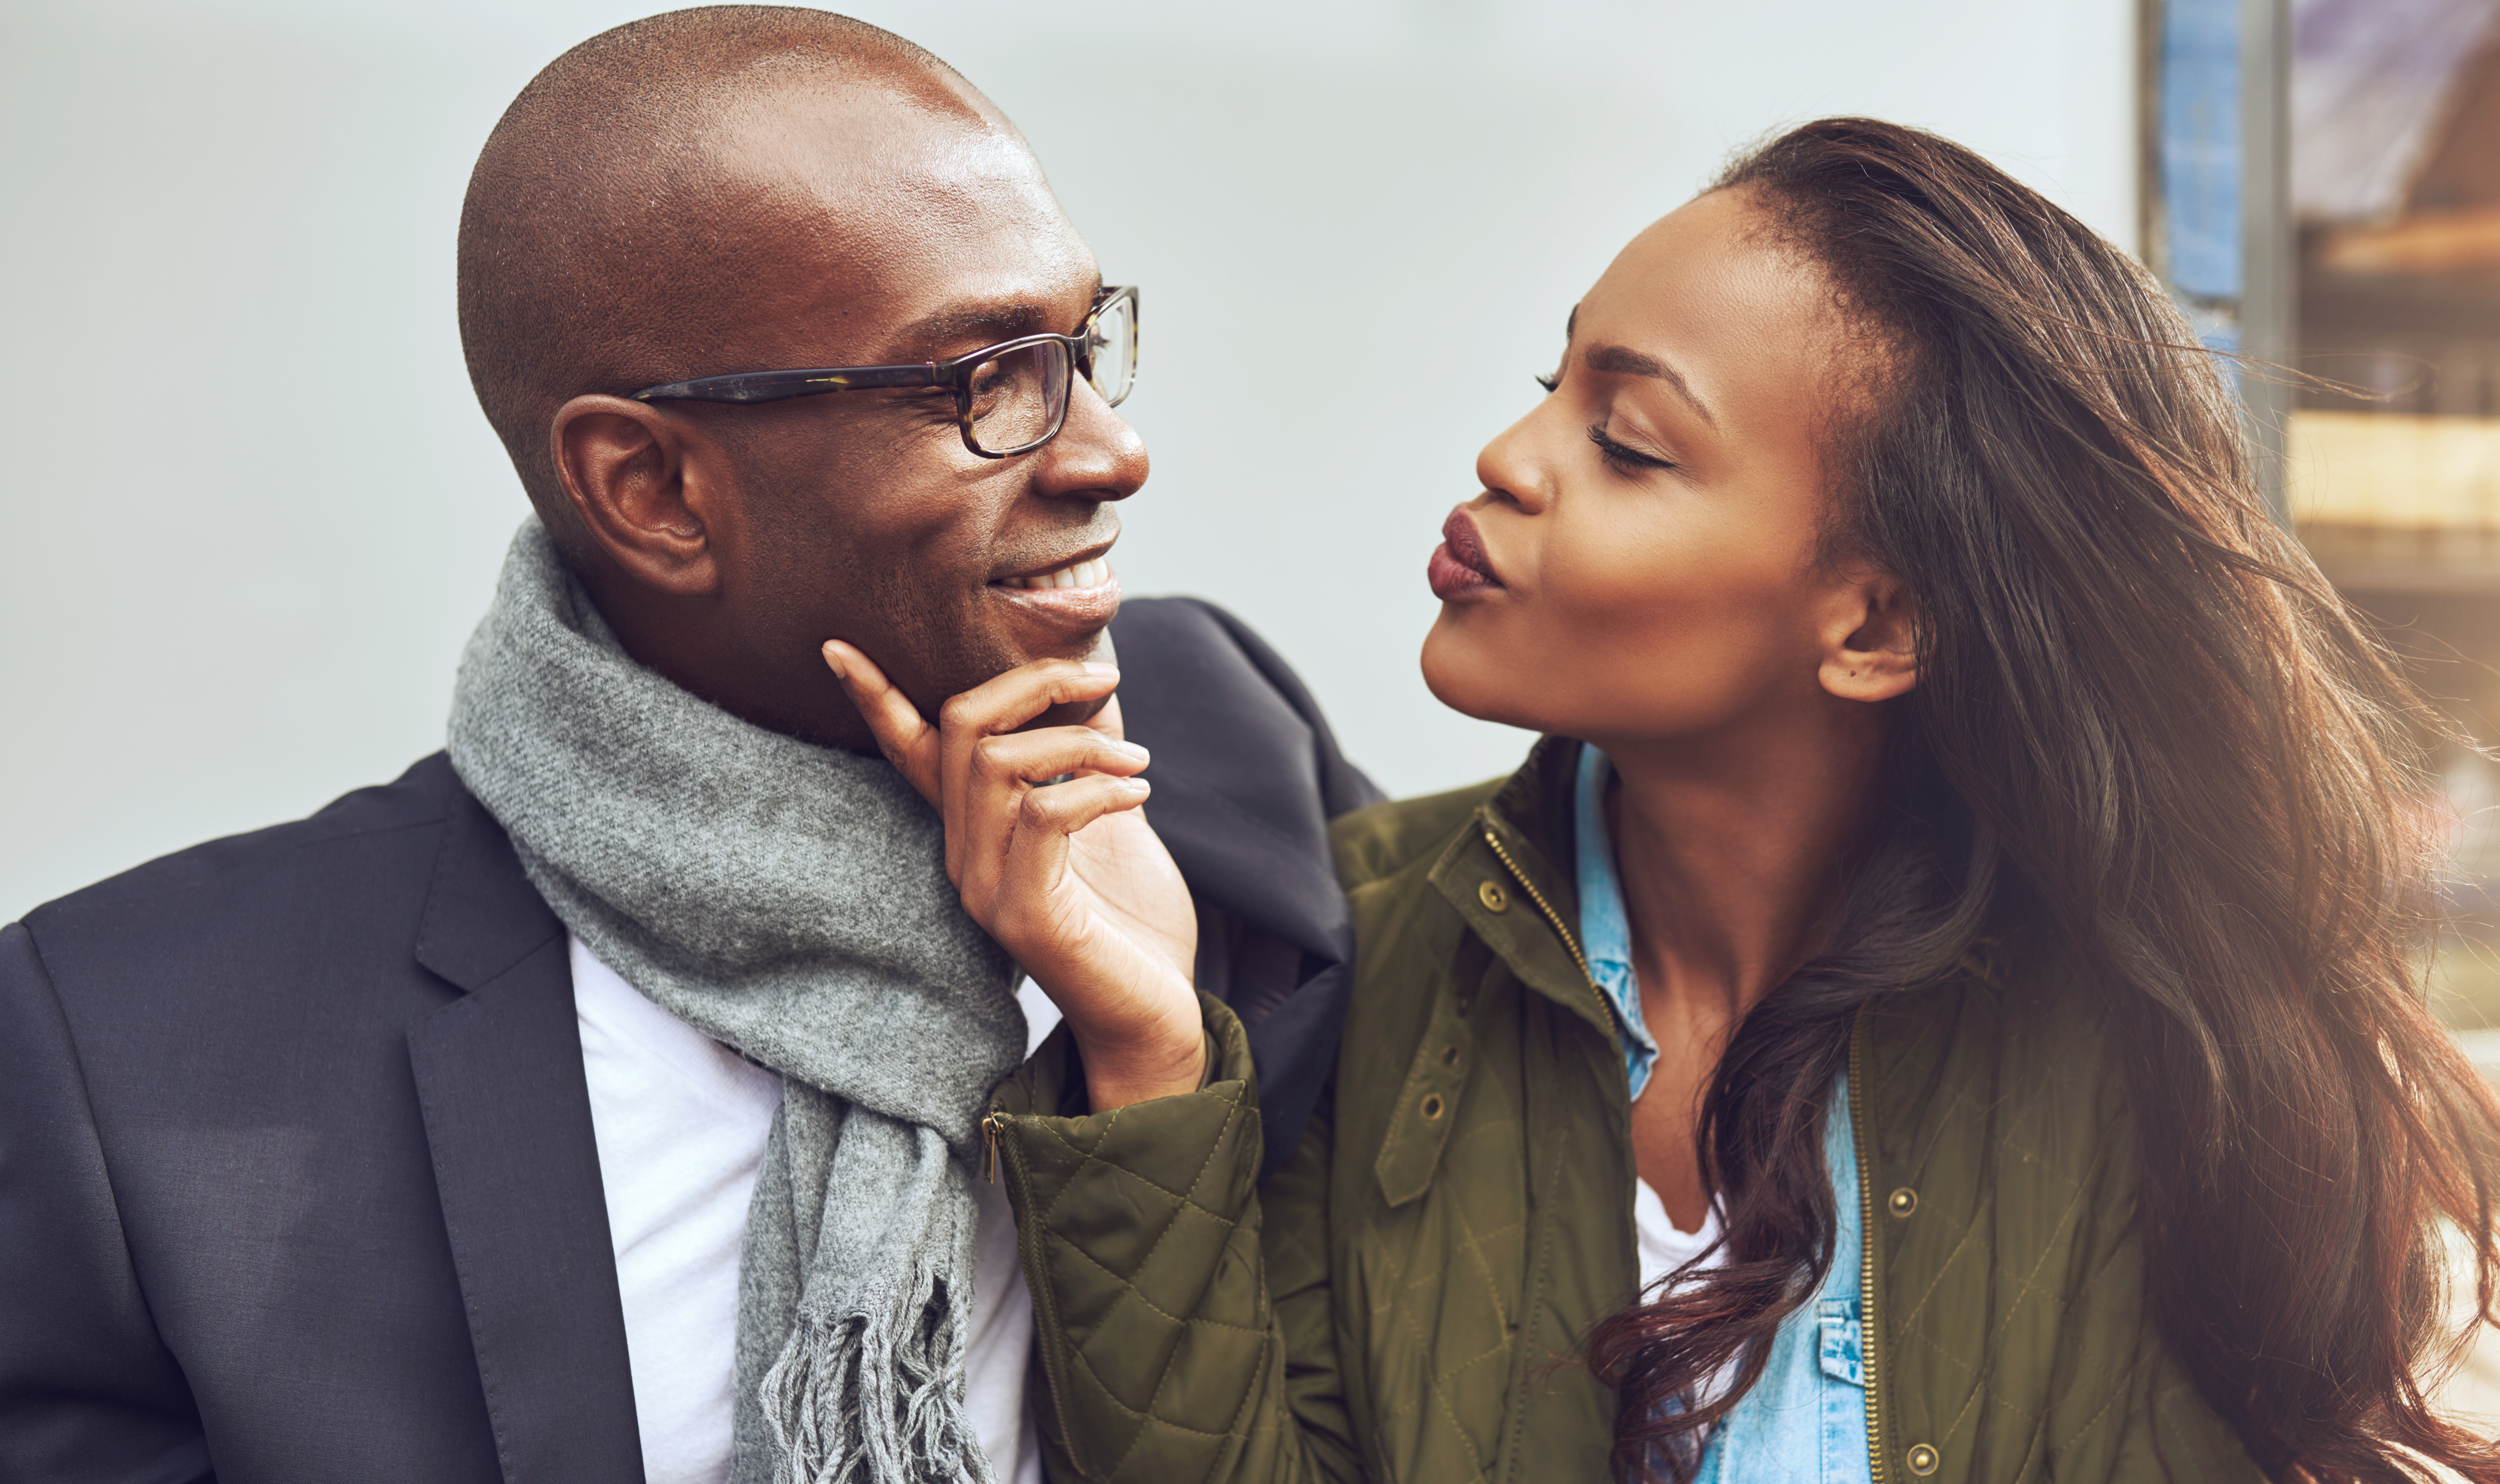 I Saw Him First: Competitive Nonverbal Flirting Among Women